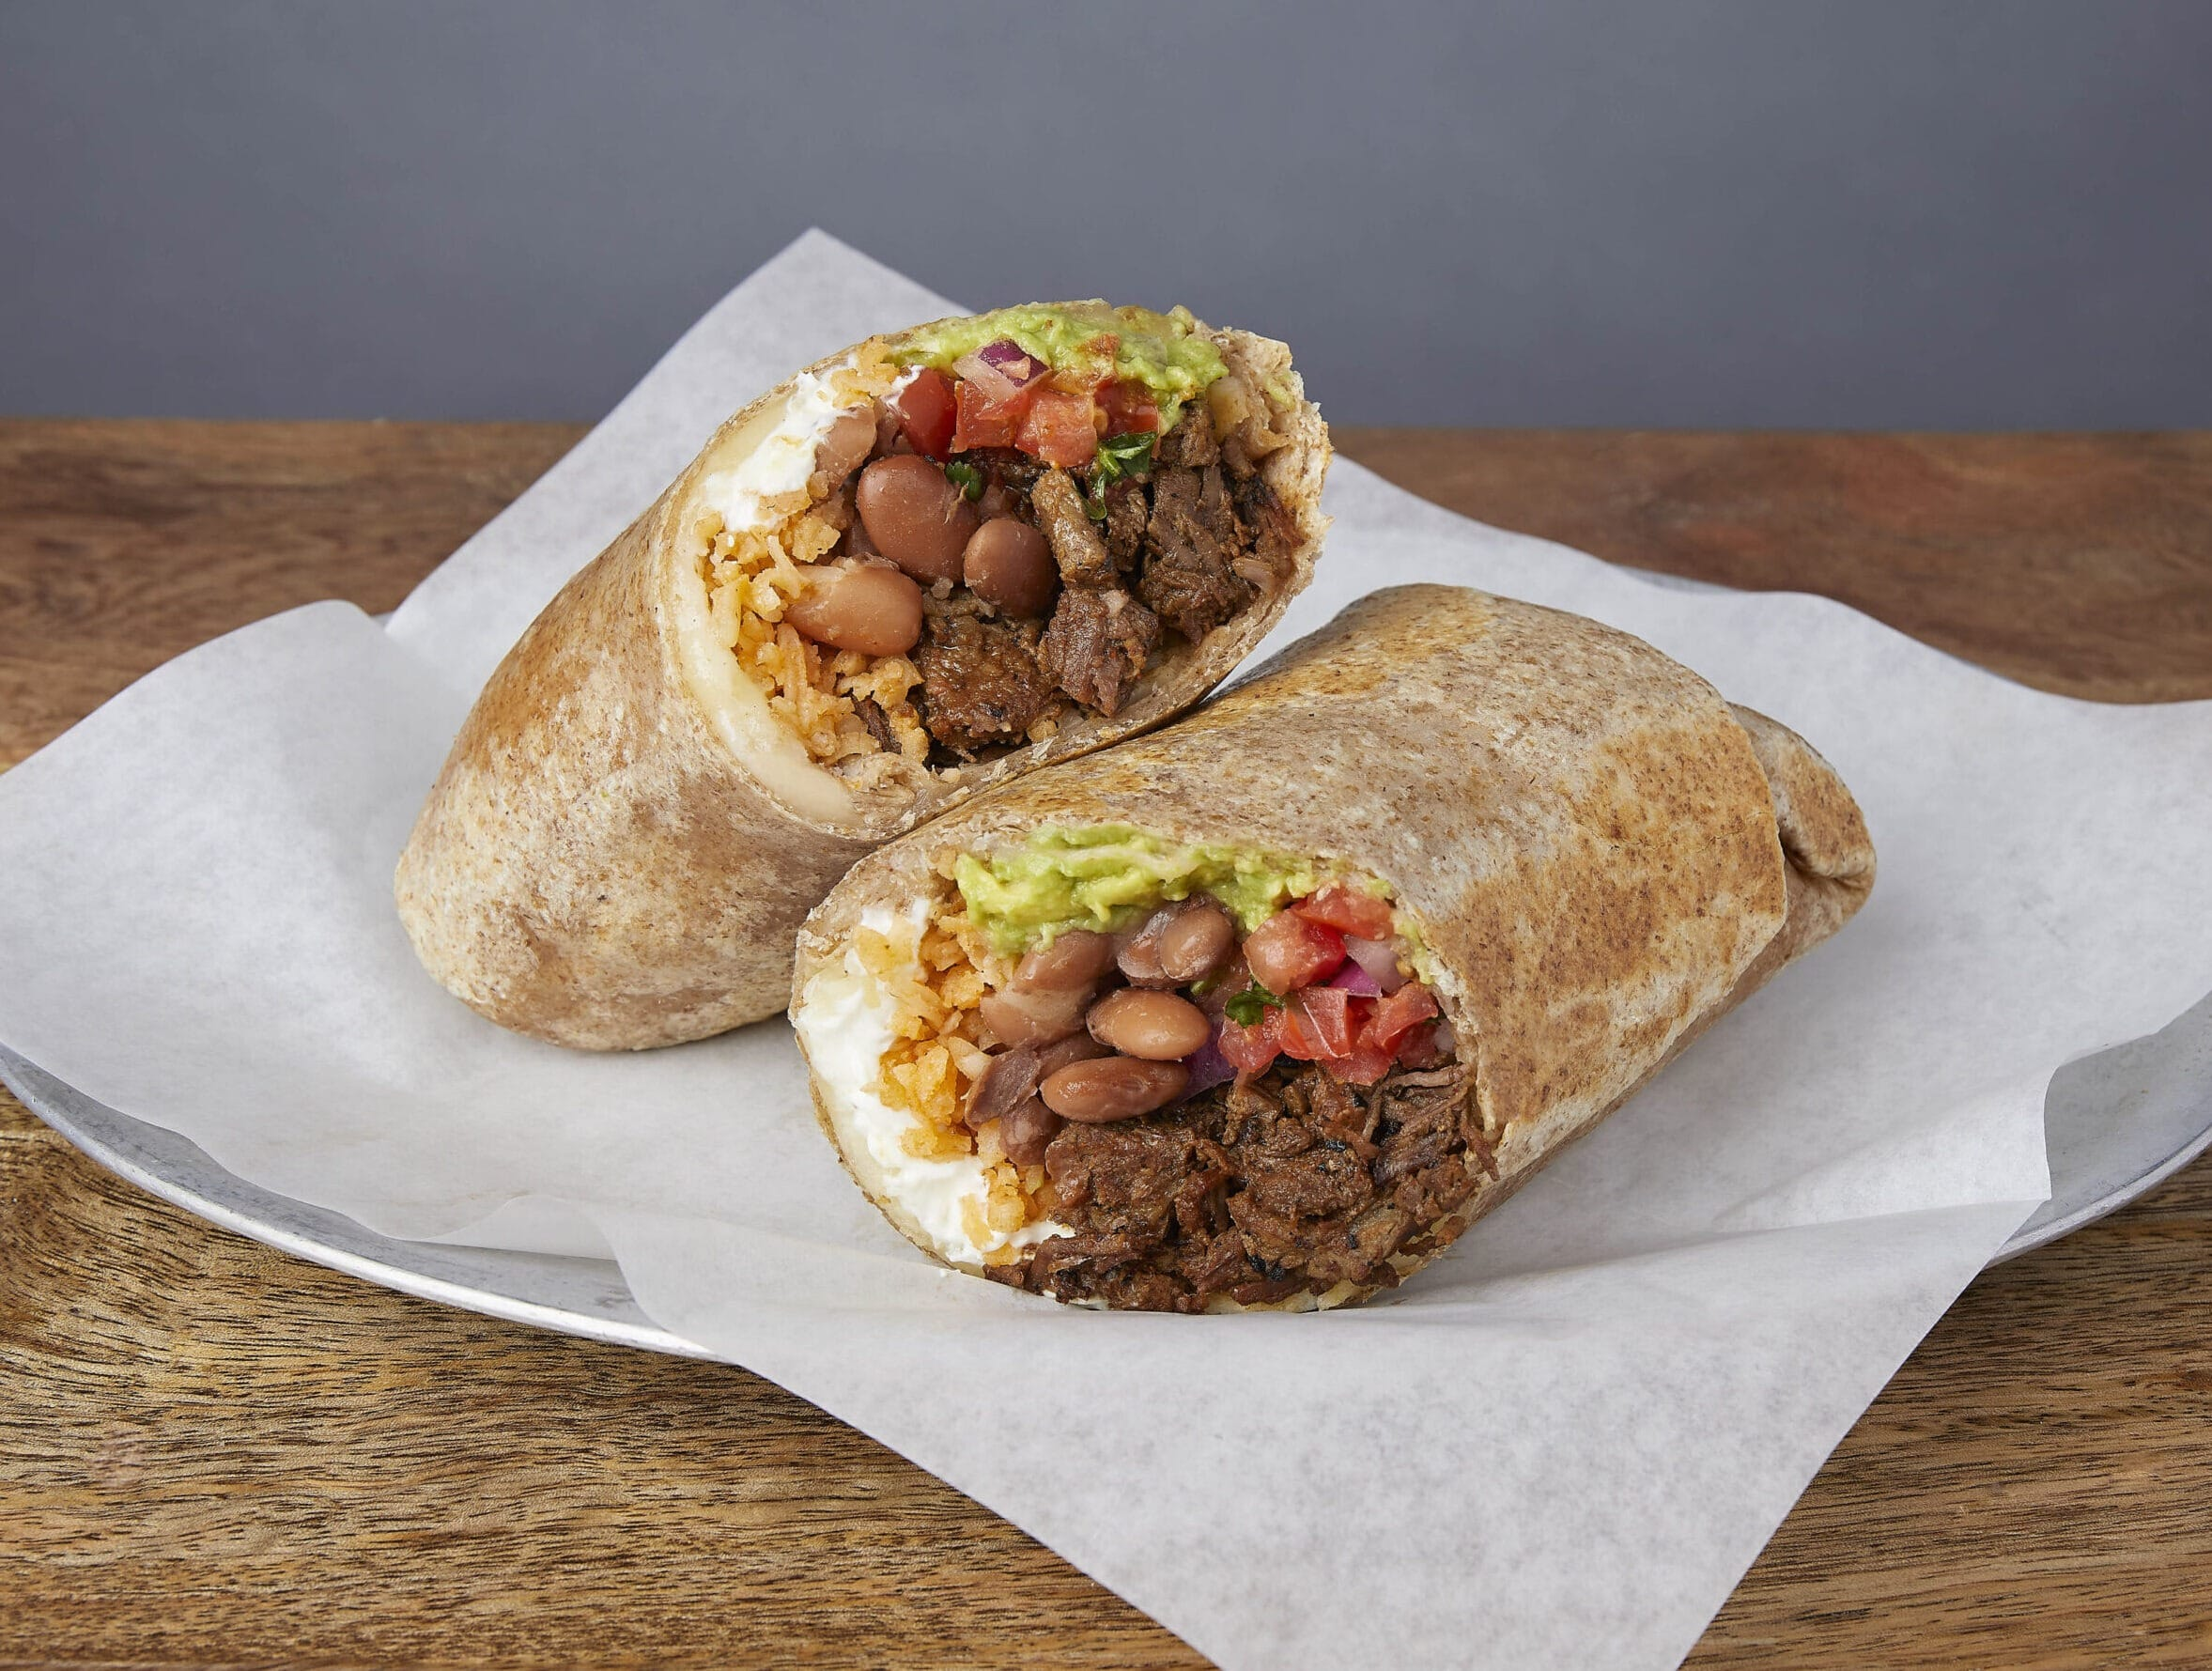 Image of San Francisco Burrito